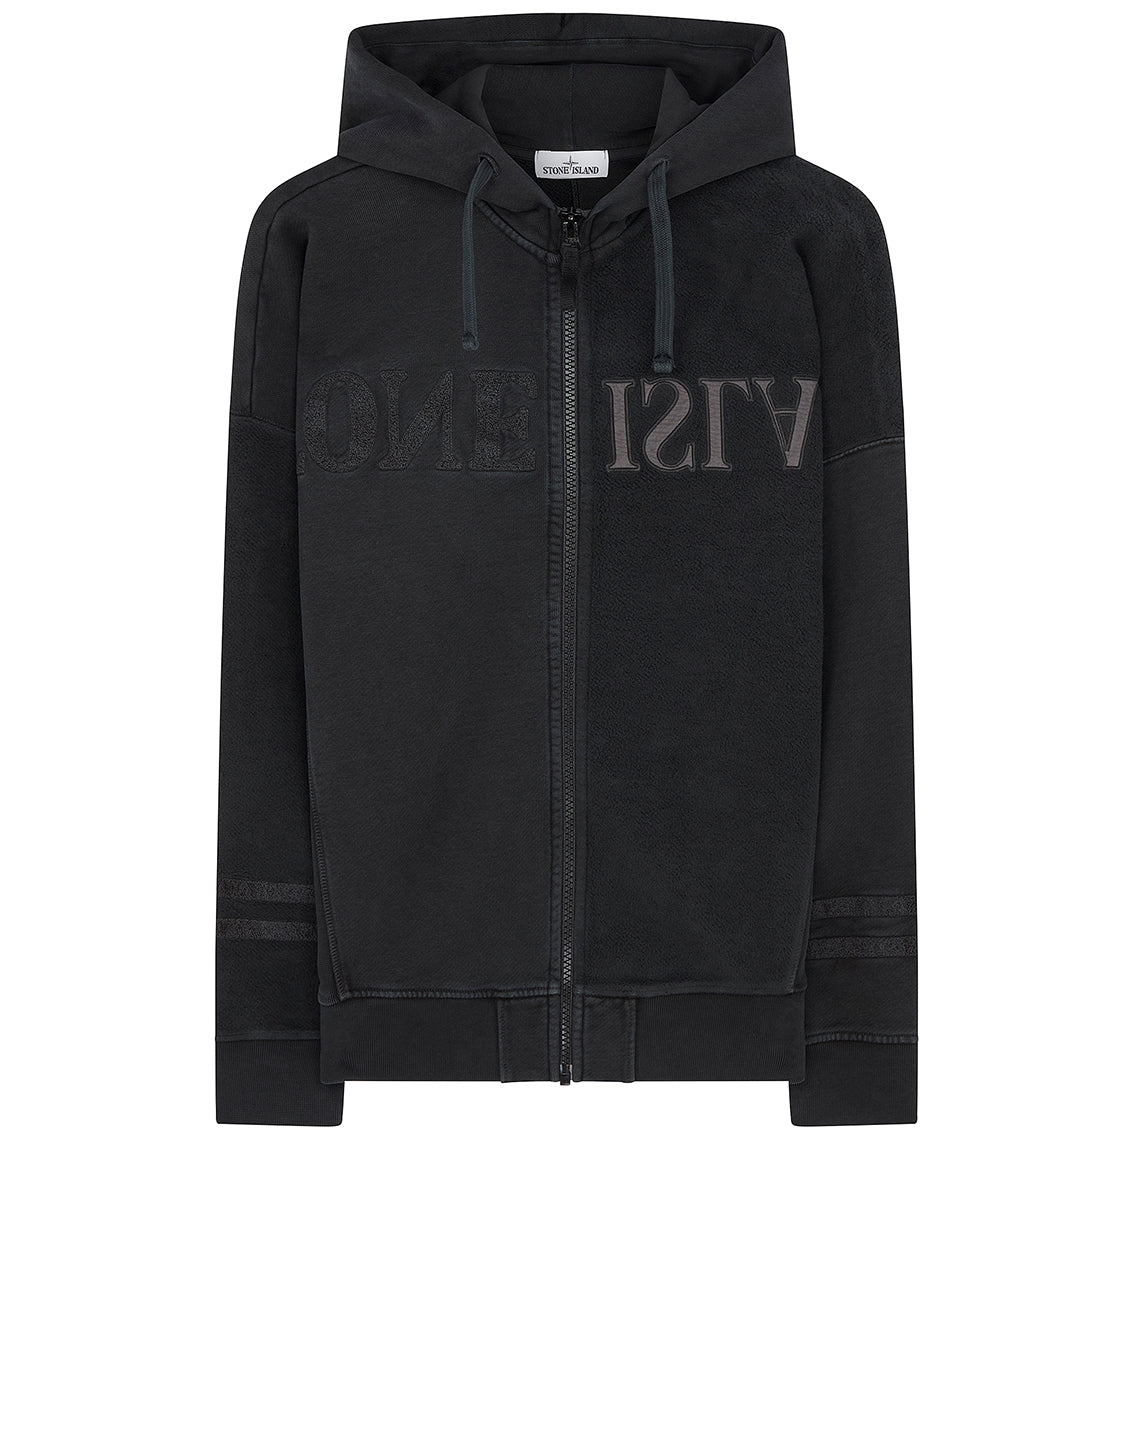 63447 Mirrored Hooded Sweatshirt in Black